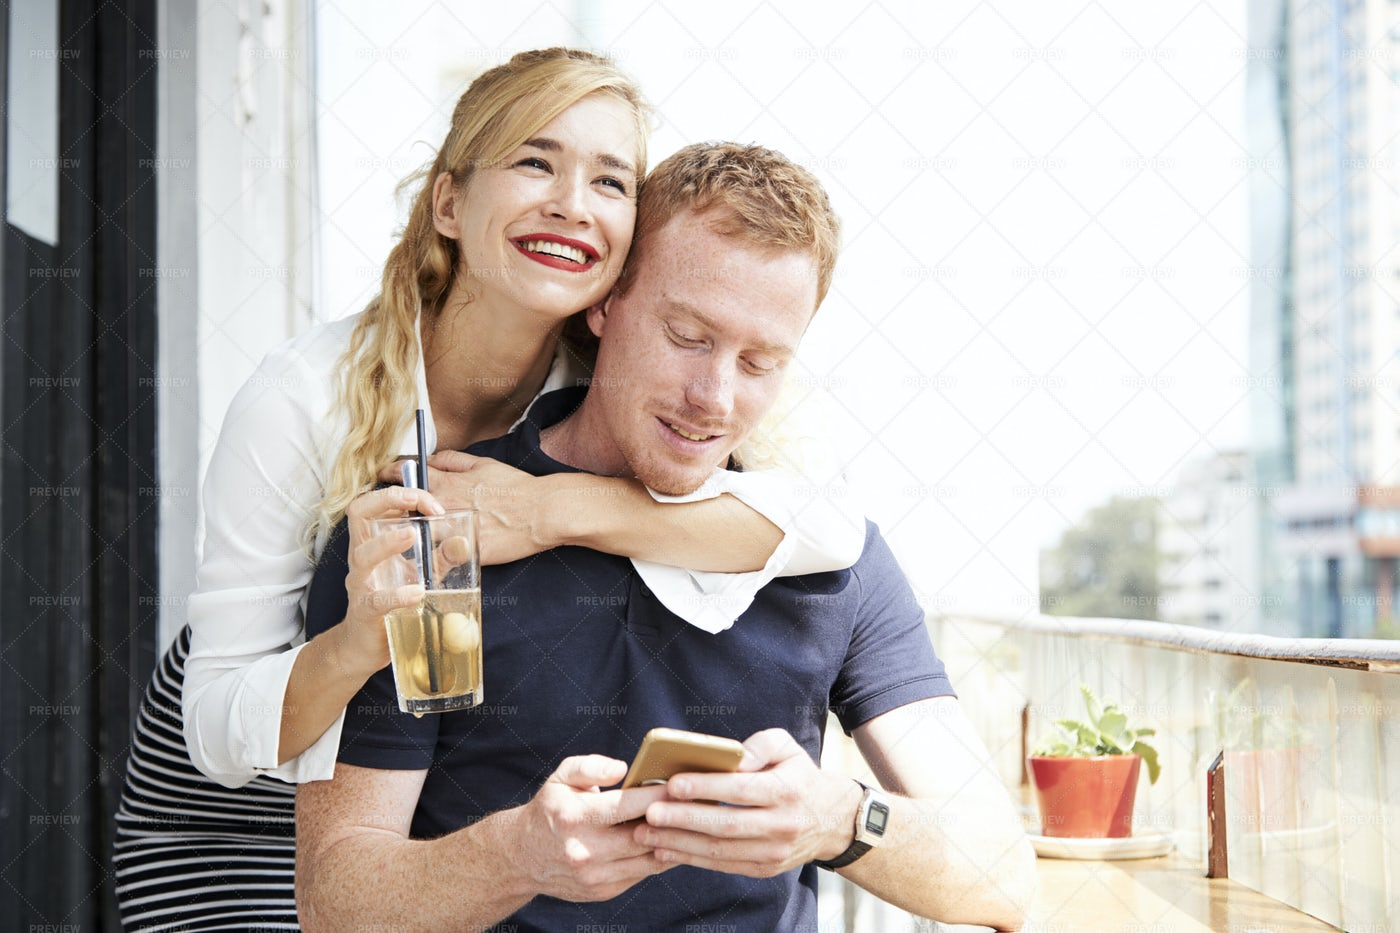 Cheerful Young Couple In Cafe: Stock Photos